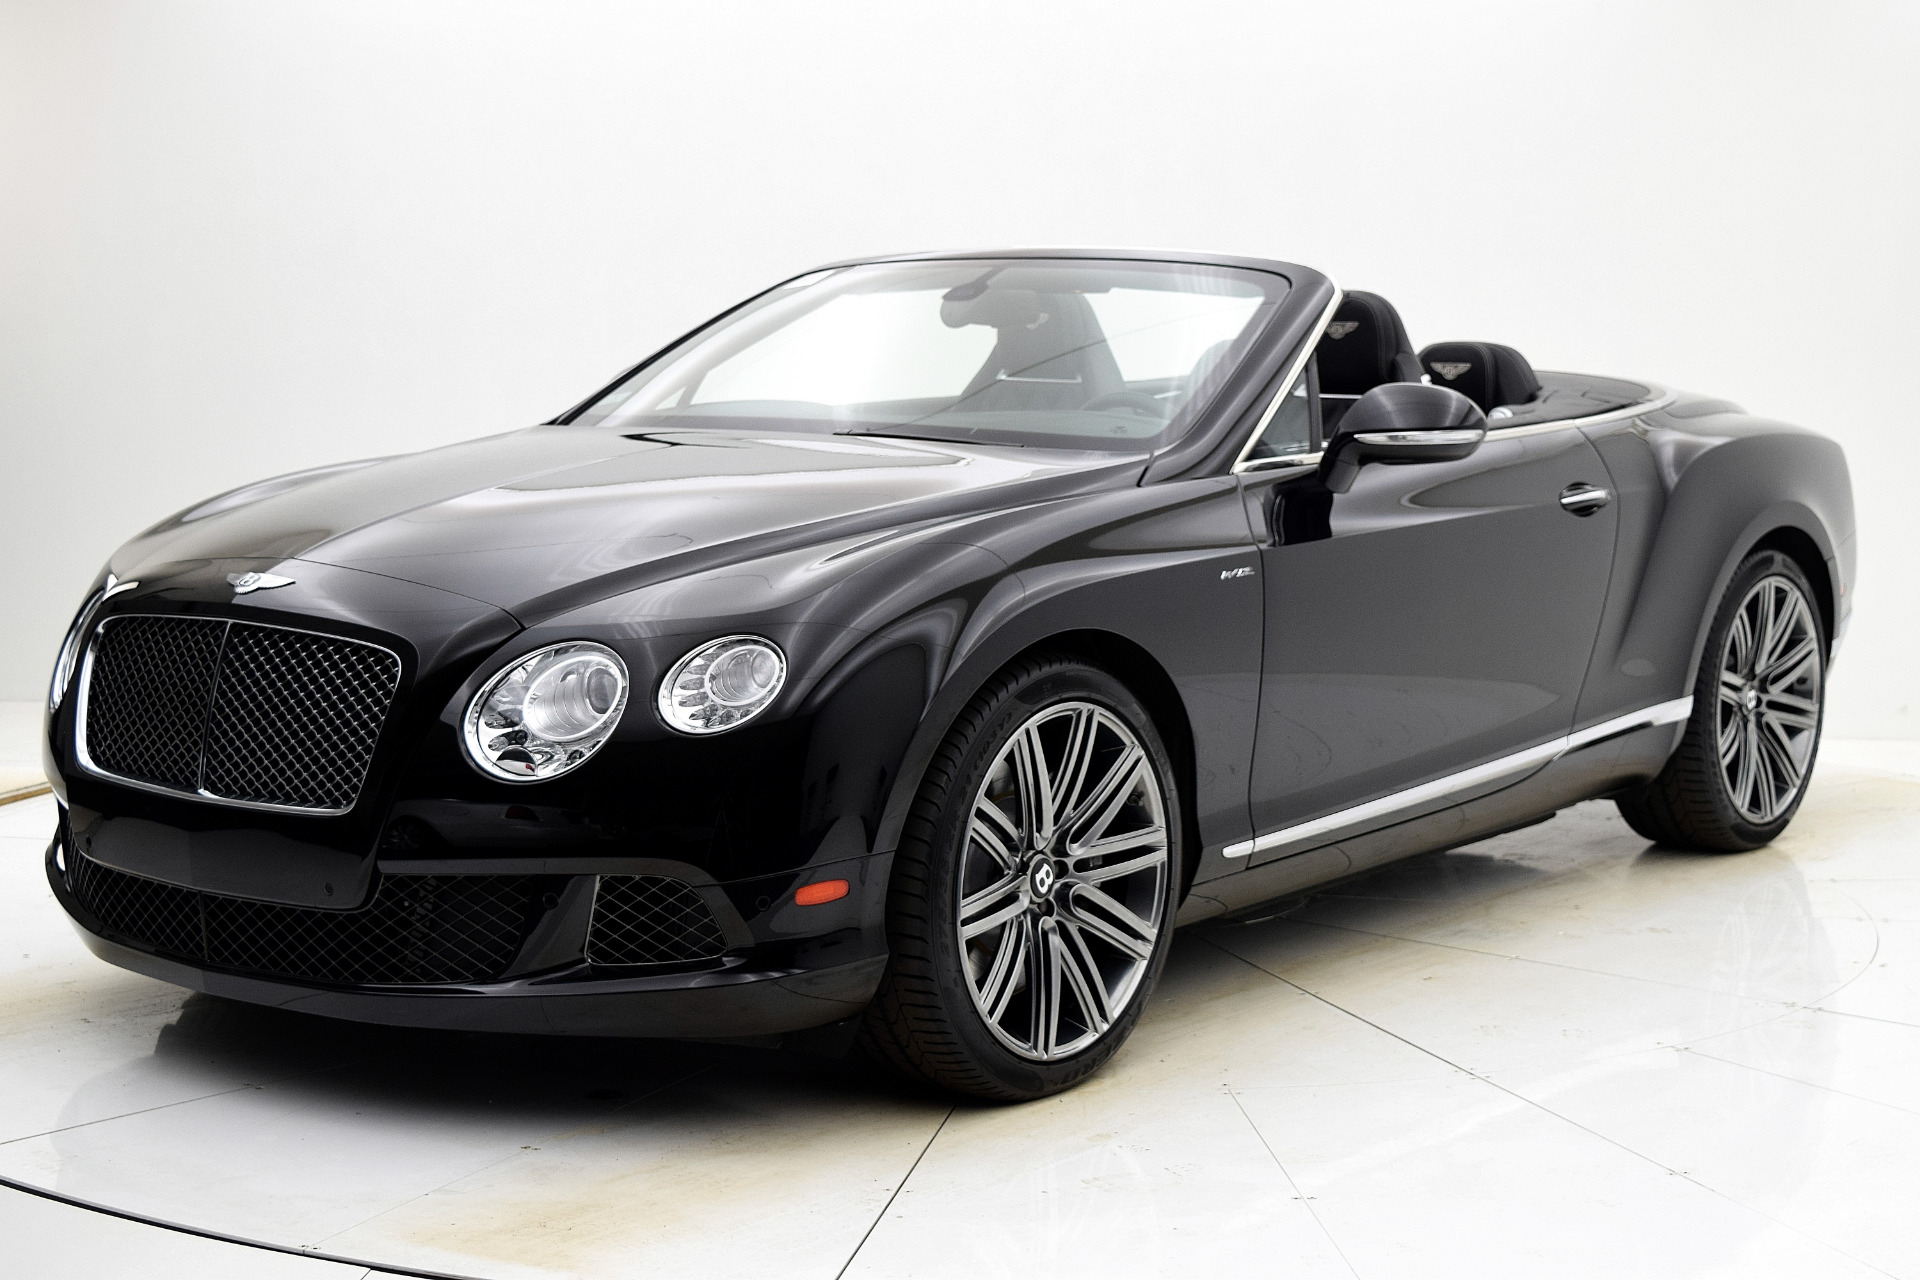 Used 2014 Bentley Continental GT Speed Convertible for sale $109,880 at F.C. Kerbeck Lamborghini Palmyra N.J. in Palmyra NJ 08065 2